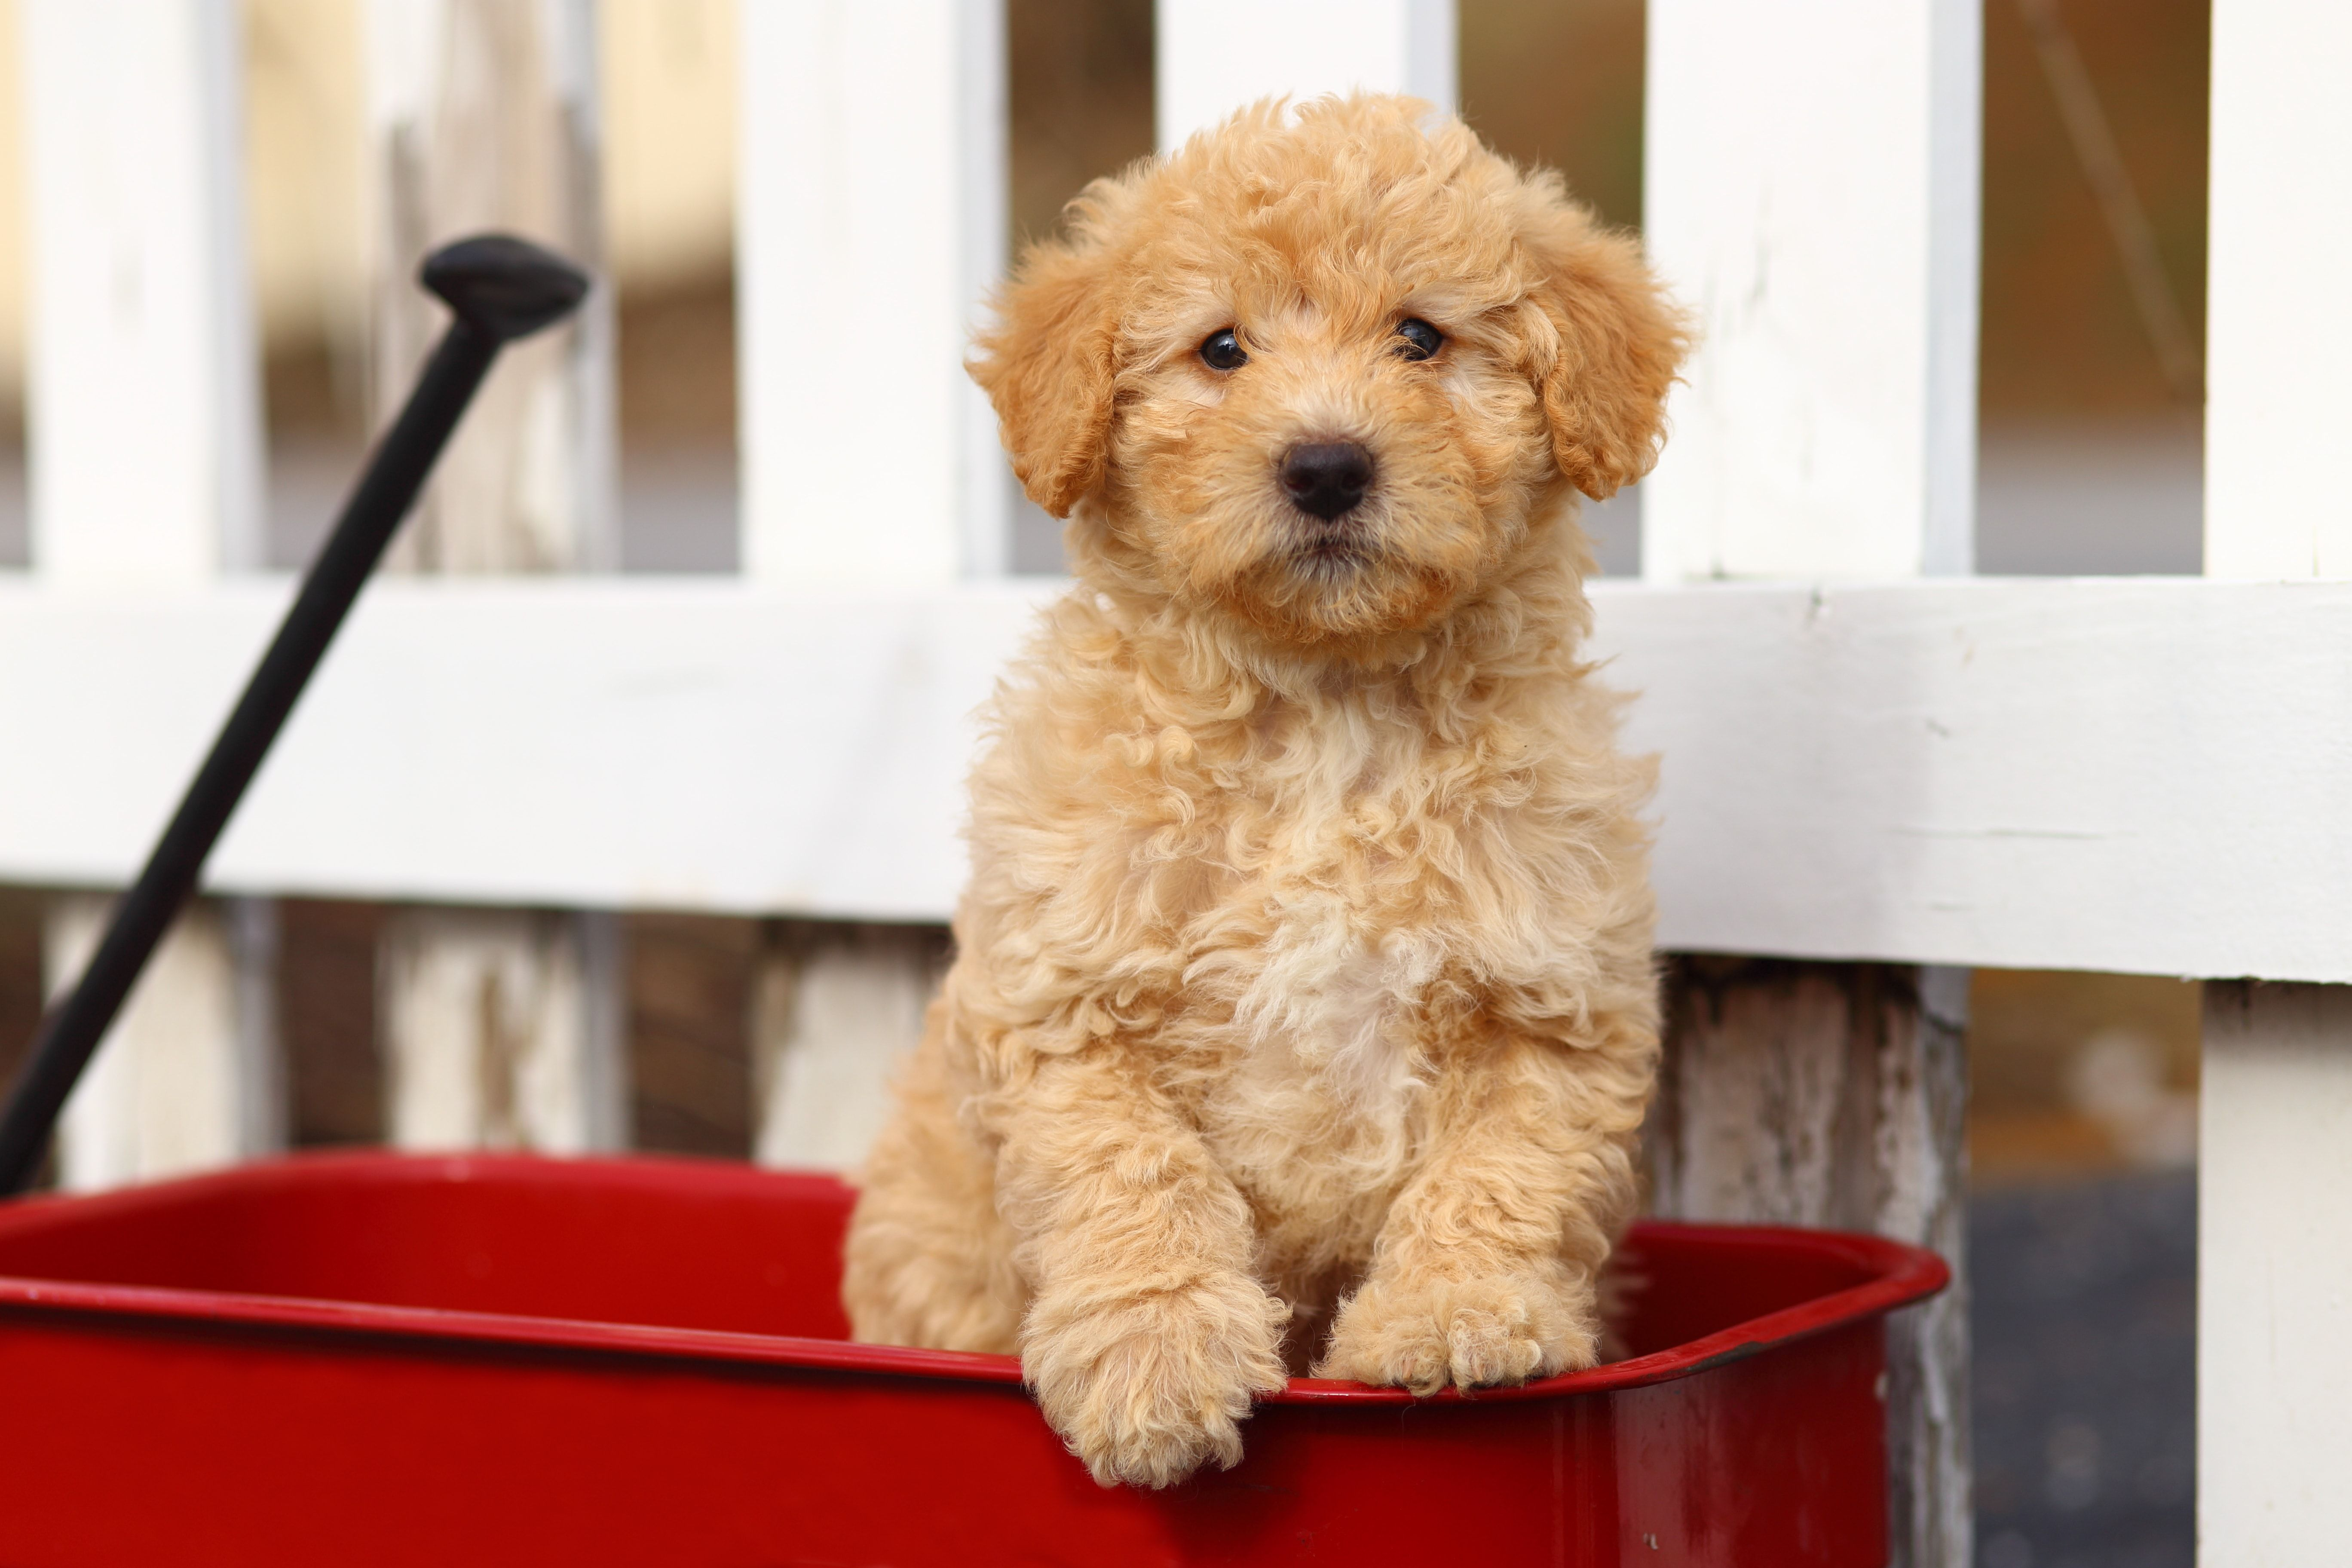 Why Are There So Many Poodle Mixes Greenfield Puppies Greenfield Puppies Labradoodle Puppies For Sale Mini Labradoodle Puppy